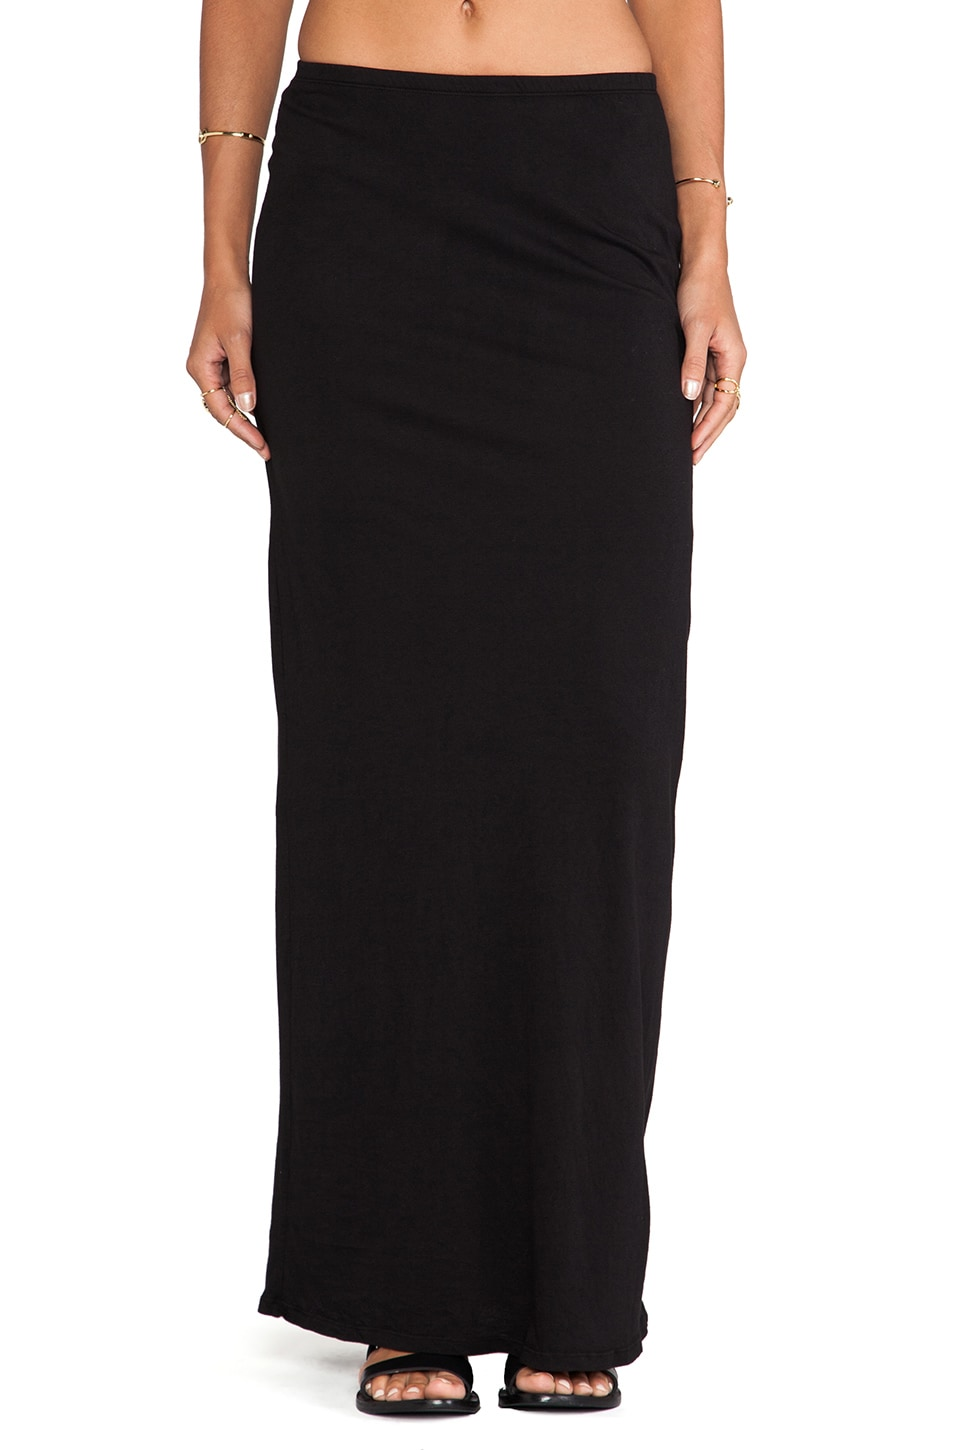 Bobi Light Weight Jersey Maxi Skirt in Black